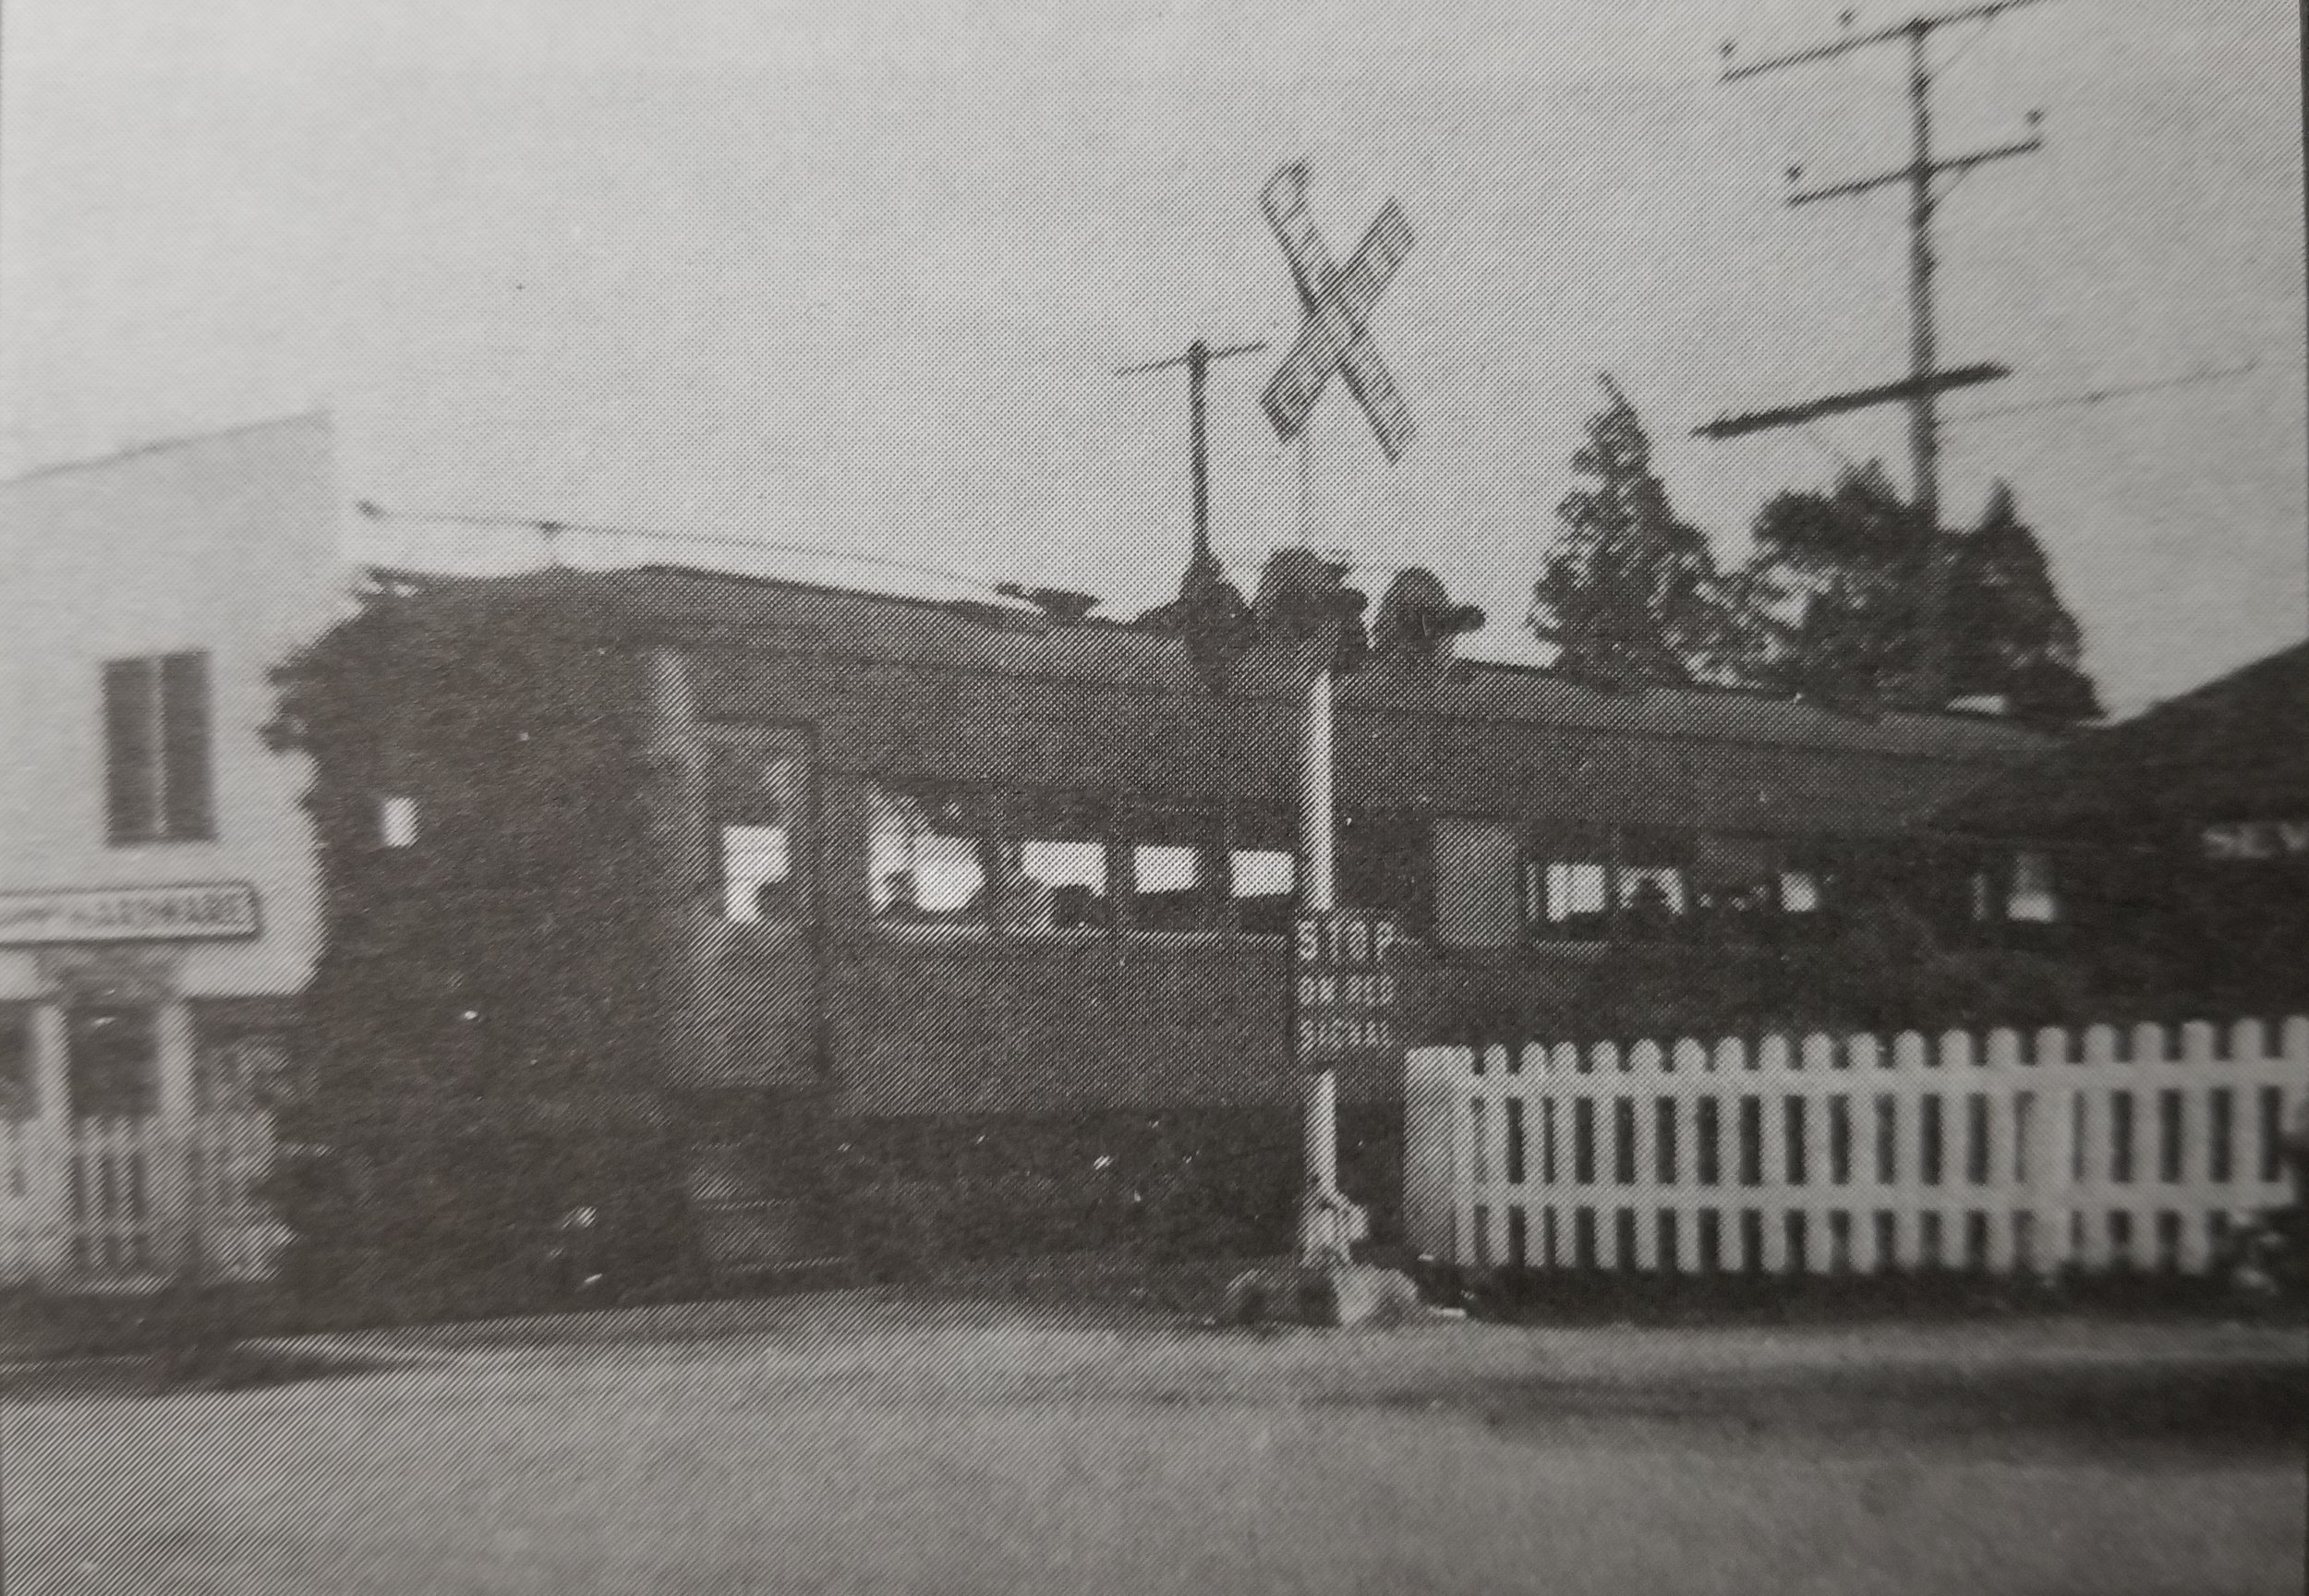 Baltimore & Annapolis Railroad Car at Severna Park Station. Severna Park, Maryland Date: Unknown. Source: Severna Park Reflections, Mildred E. Rund Collection.